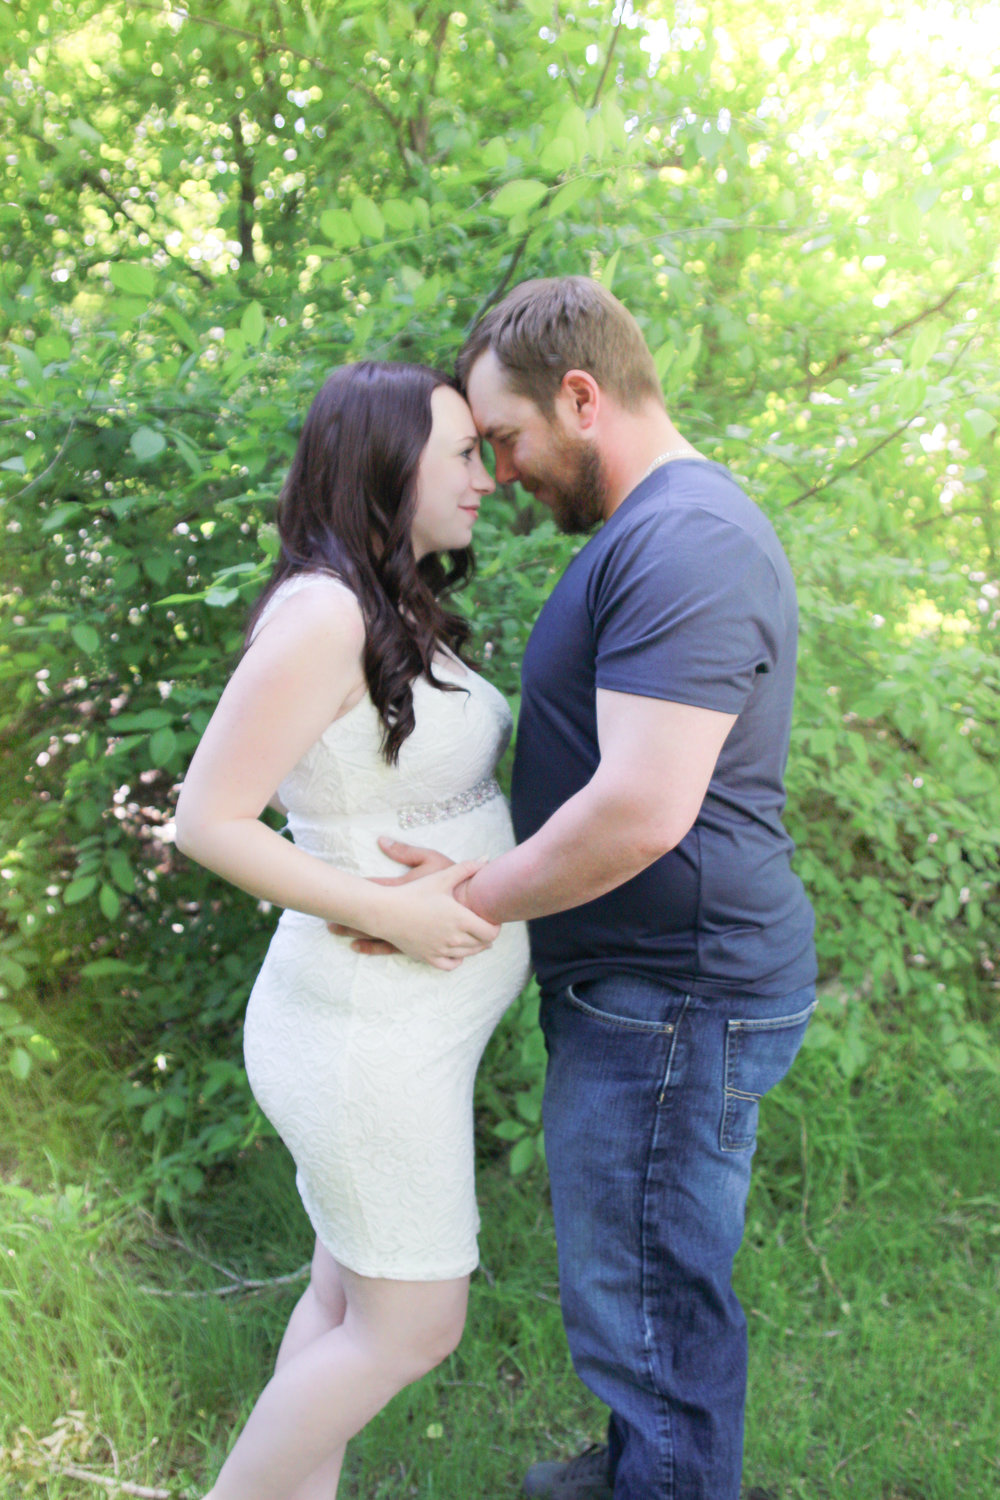 M&P {Expecting!}_WEB-17.jpg